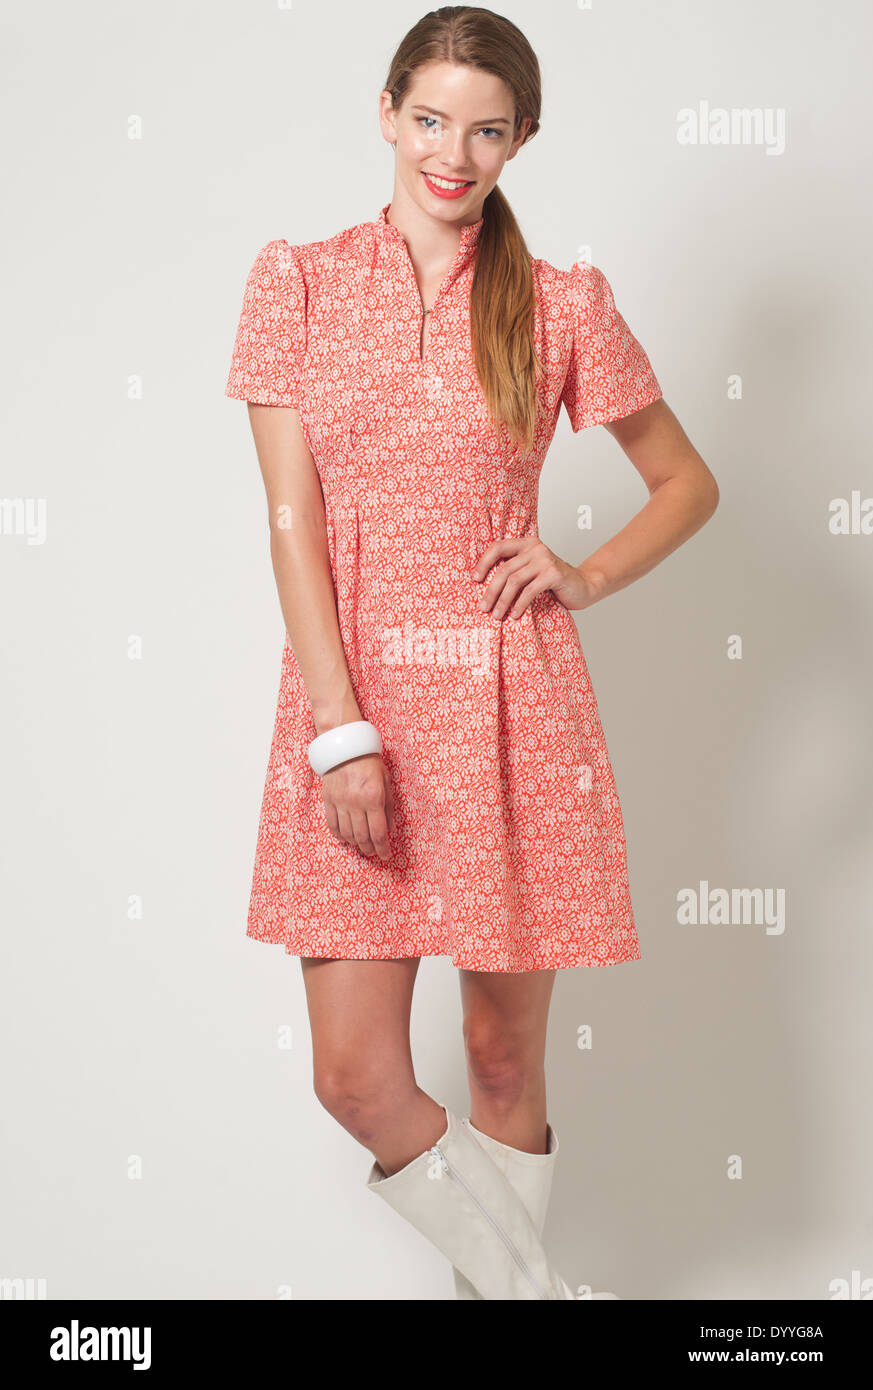 Vintage Clothing Dress Blonde Imágenes De Stock & Vintage Clothing ...